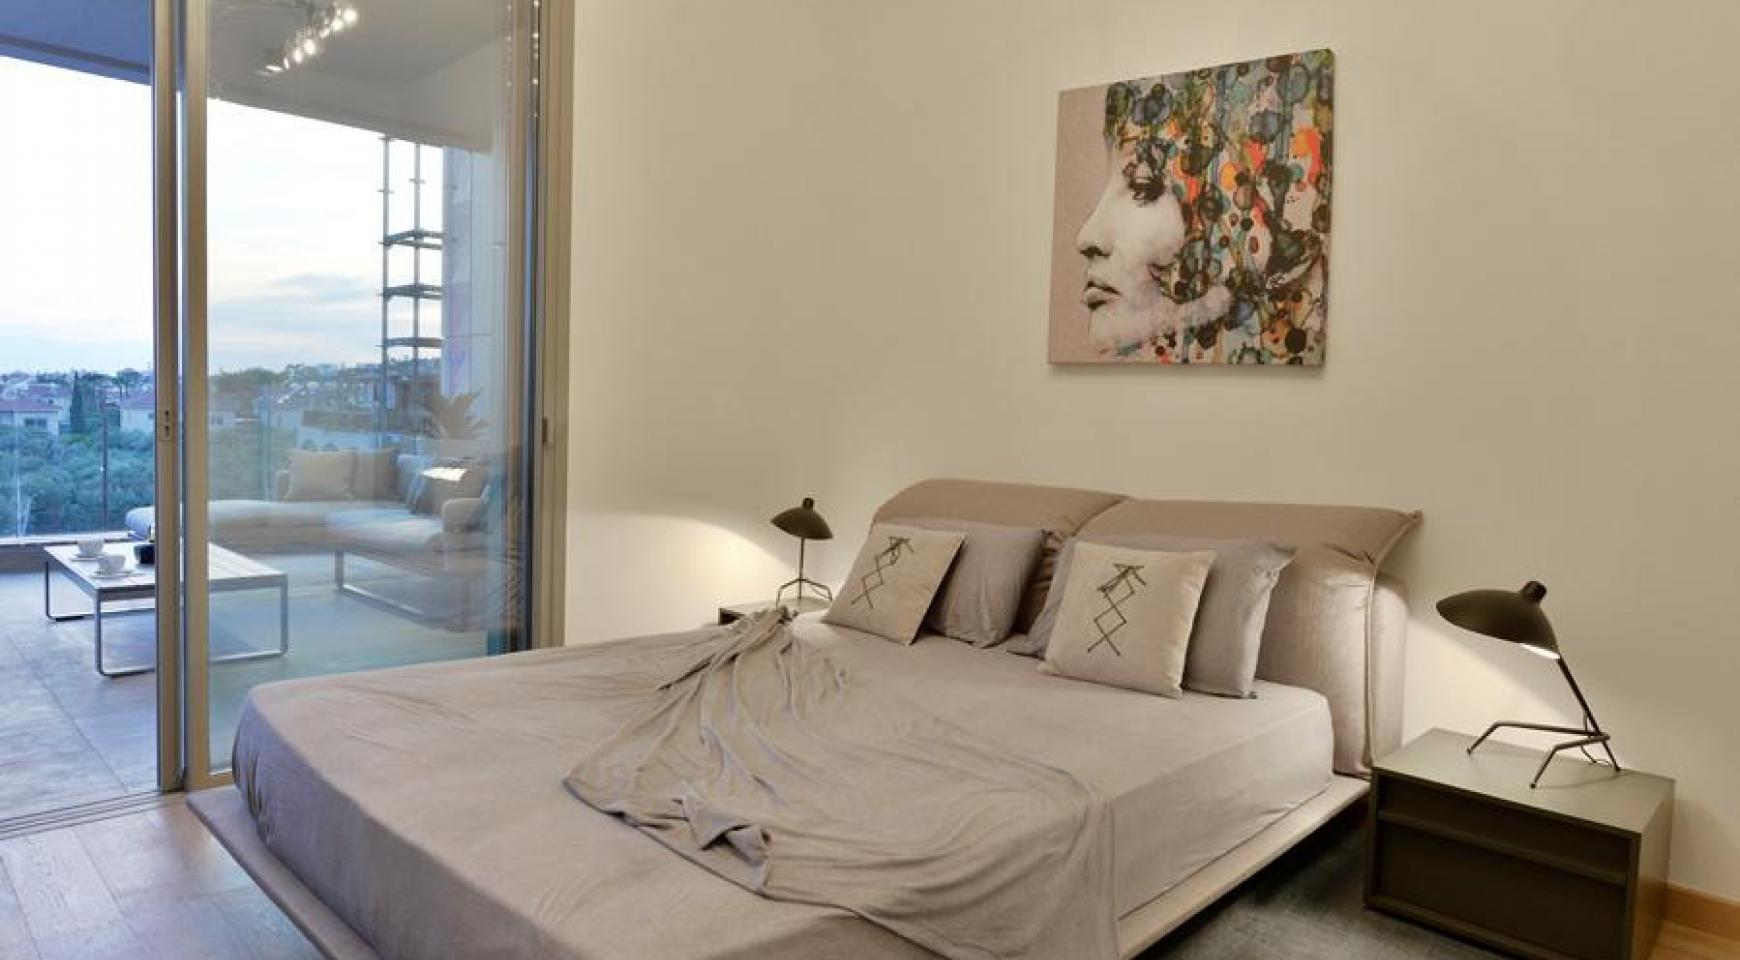 Elite 3 Bedroom Apartment within a New Complex near the Sea - 18